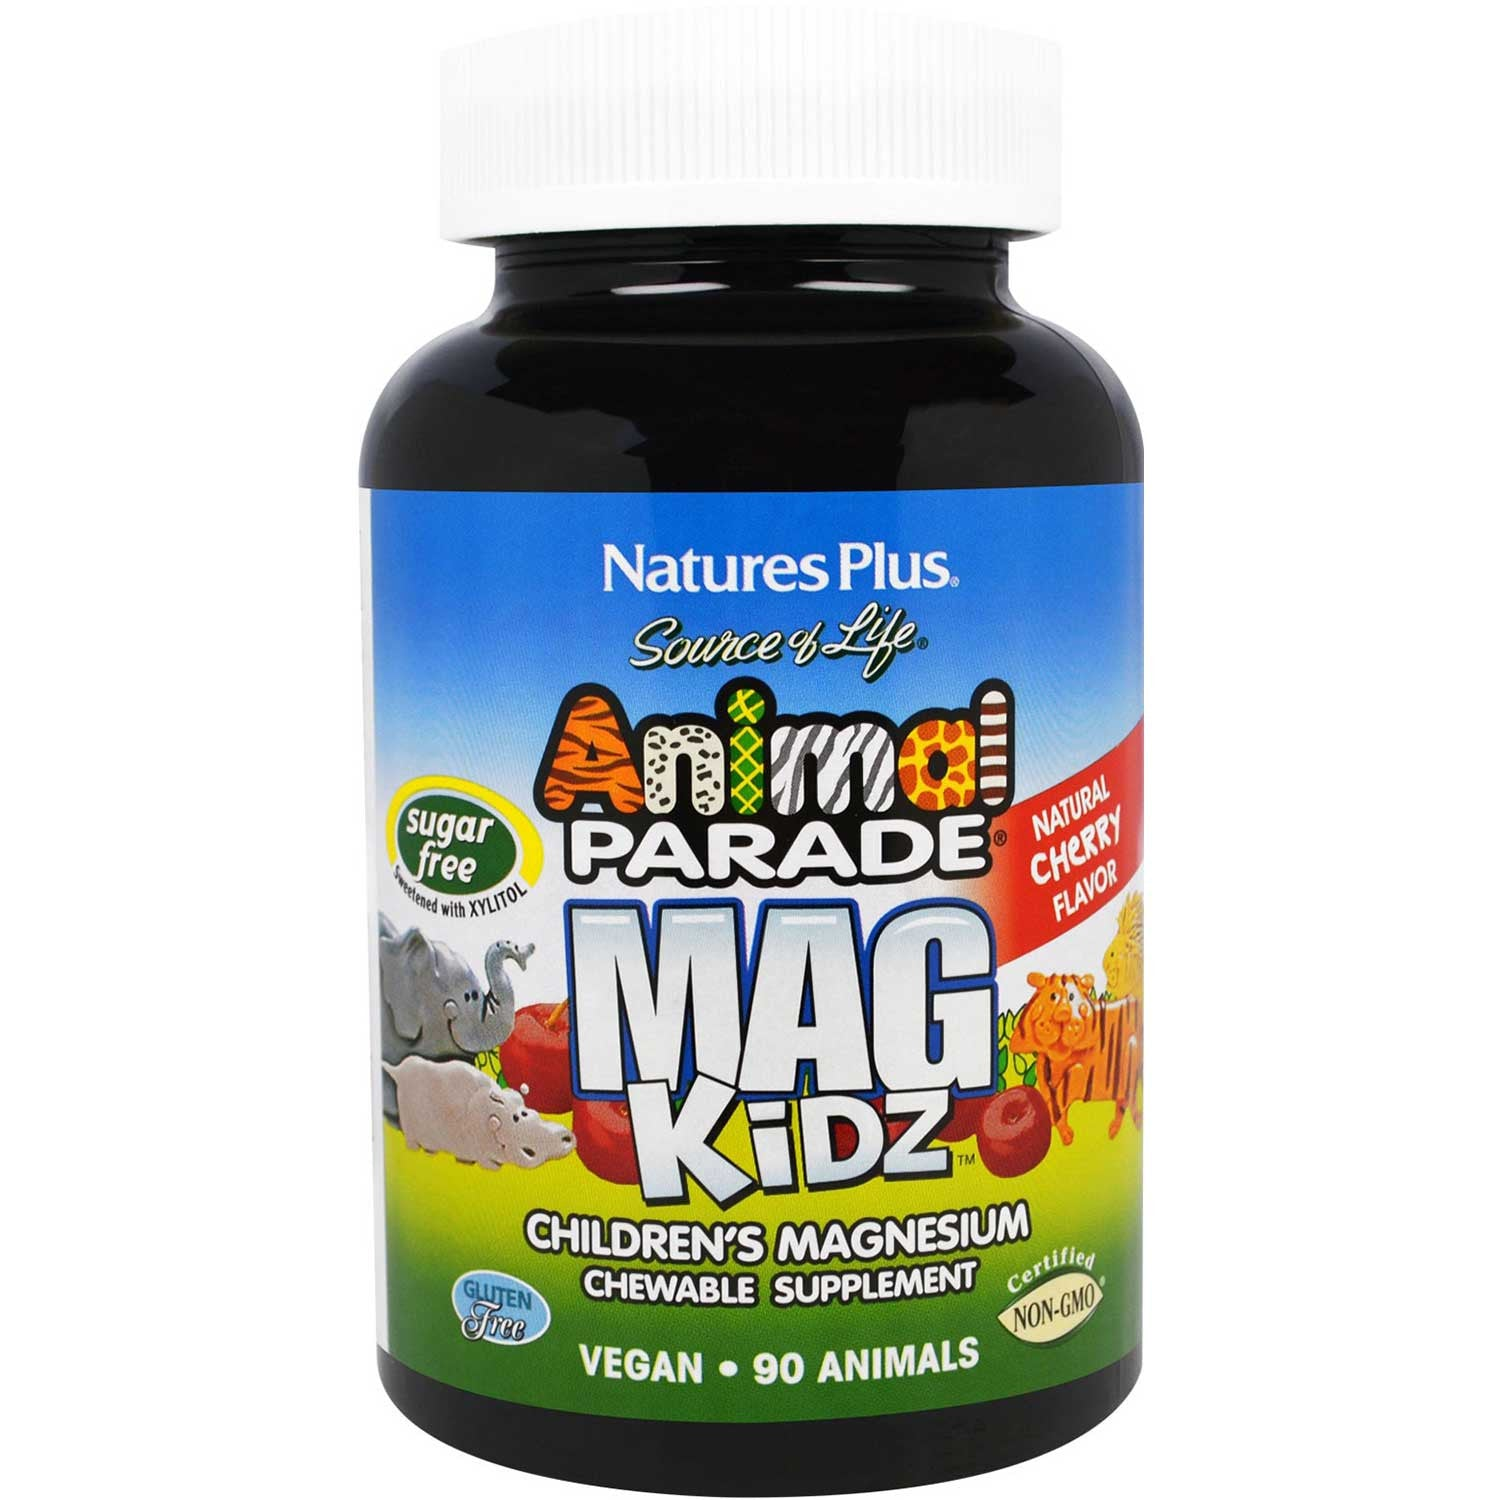 Natures Plus Source of Life Animal Parade Mag Kidz Chewable - Cherry (Sugar-Free), 90 tabs.-NaturesWisdom